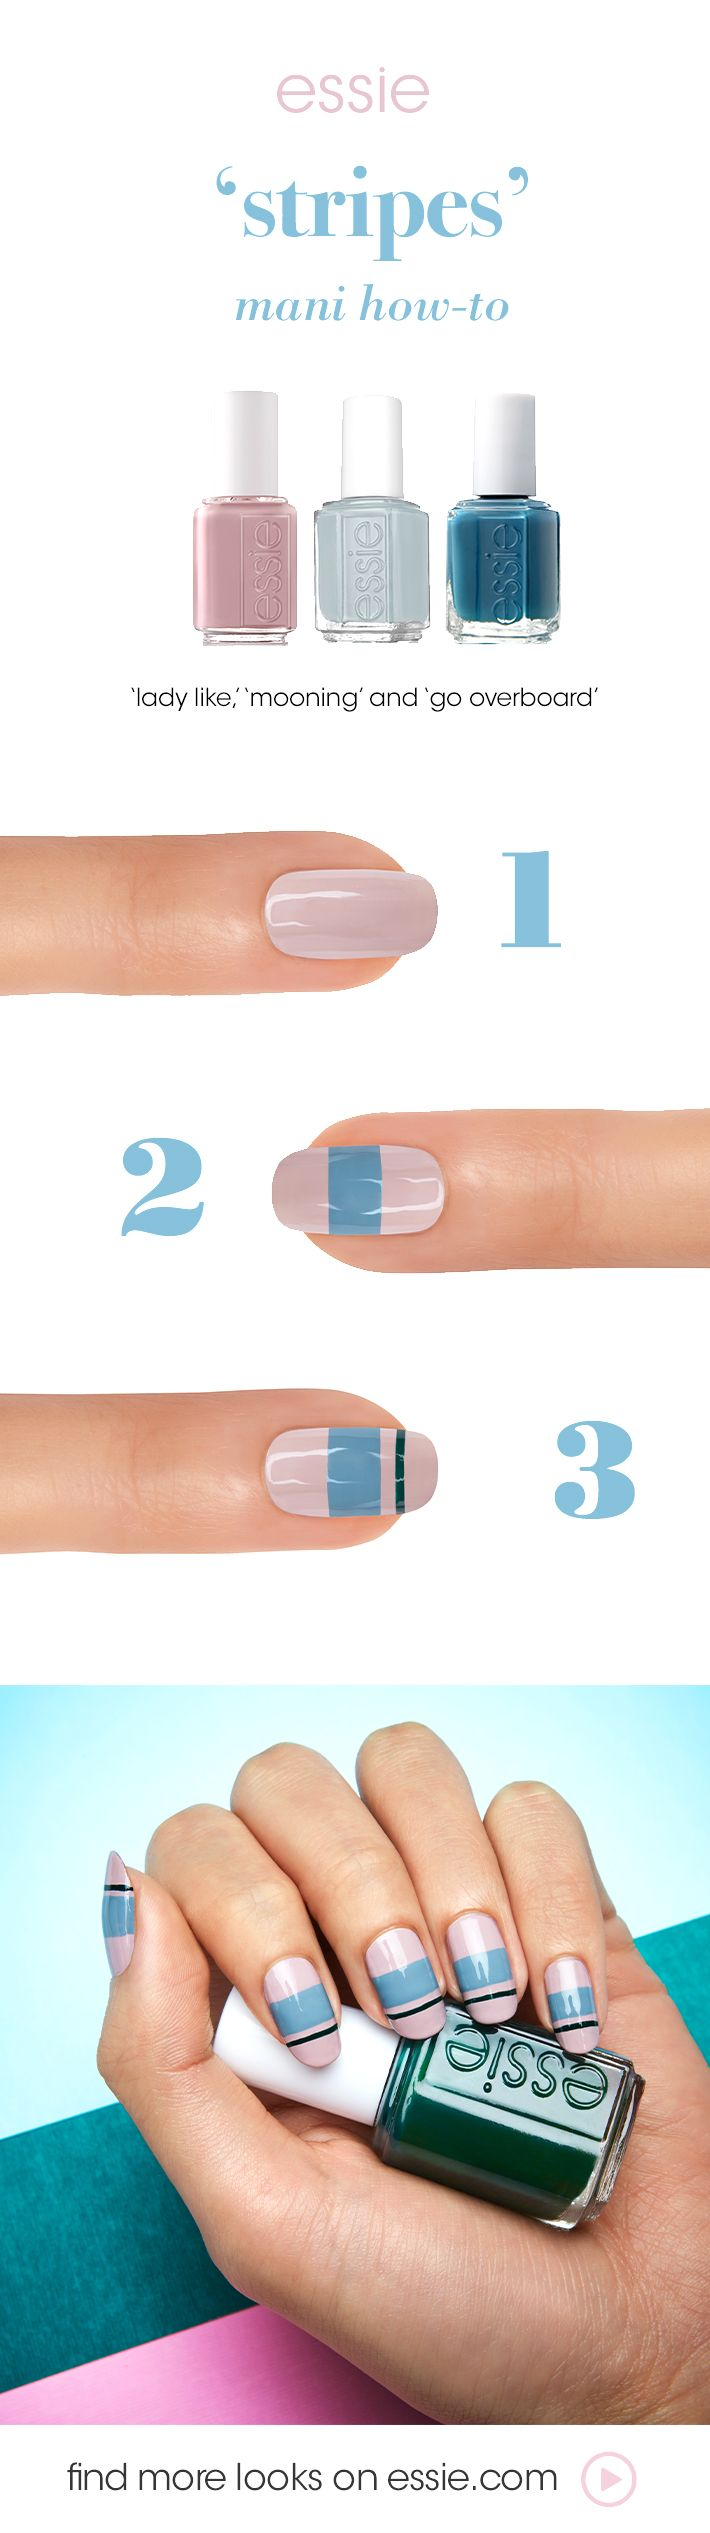 this beautiful nail art will get you ready for anything. with a creamy mauve nail color topped with a nude blue nail shade and a hint of fabulous teal, you'll sail through the day with style! featured: essie lady like, mooning, and go overboard